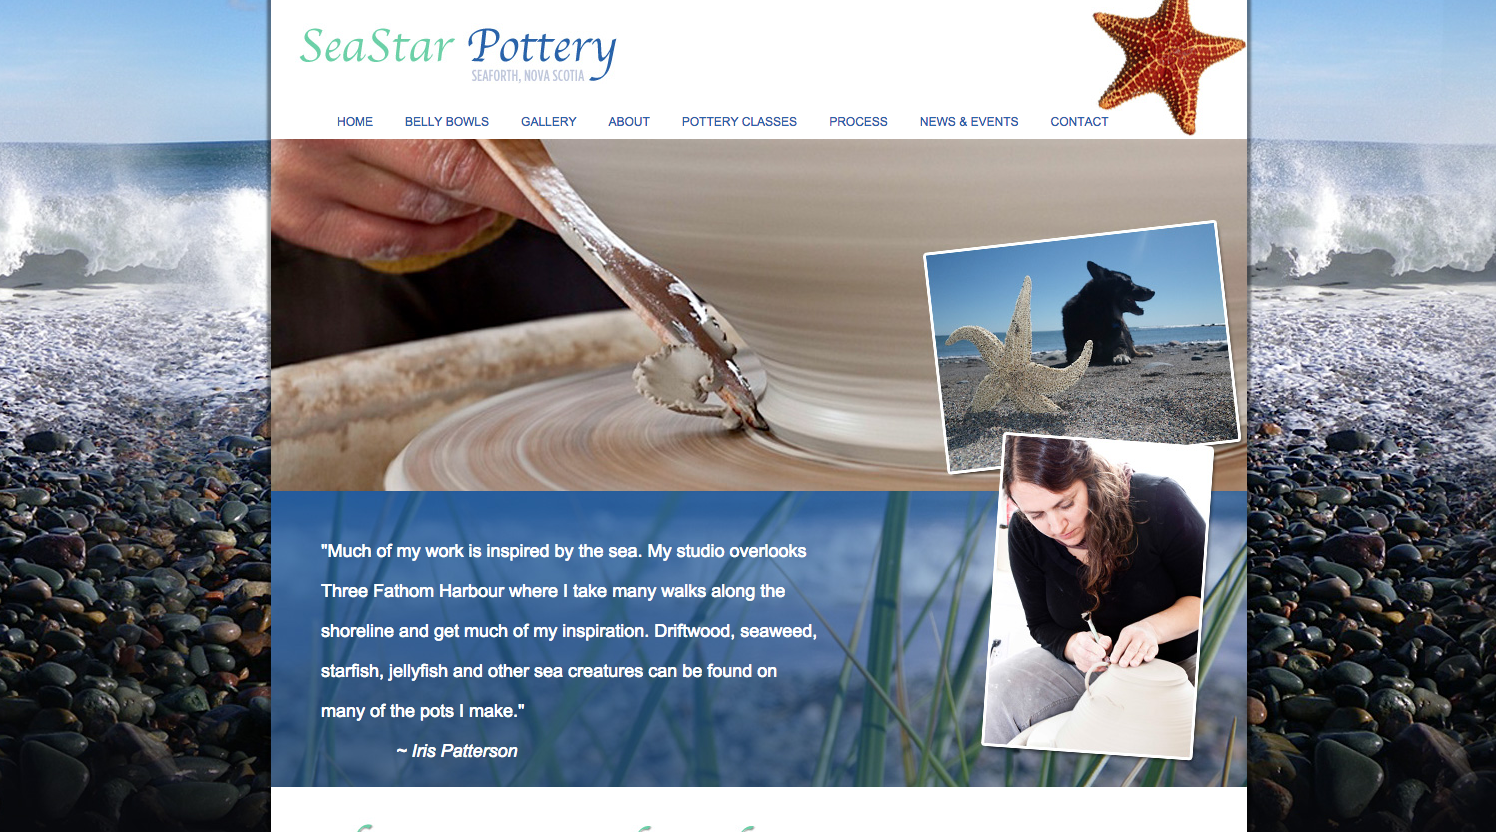 Sea Star Pottery